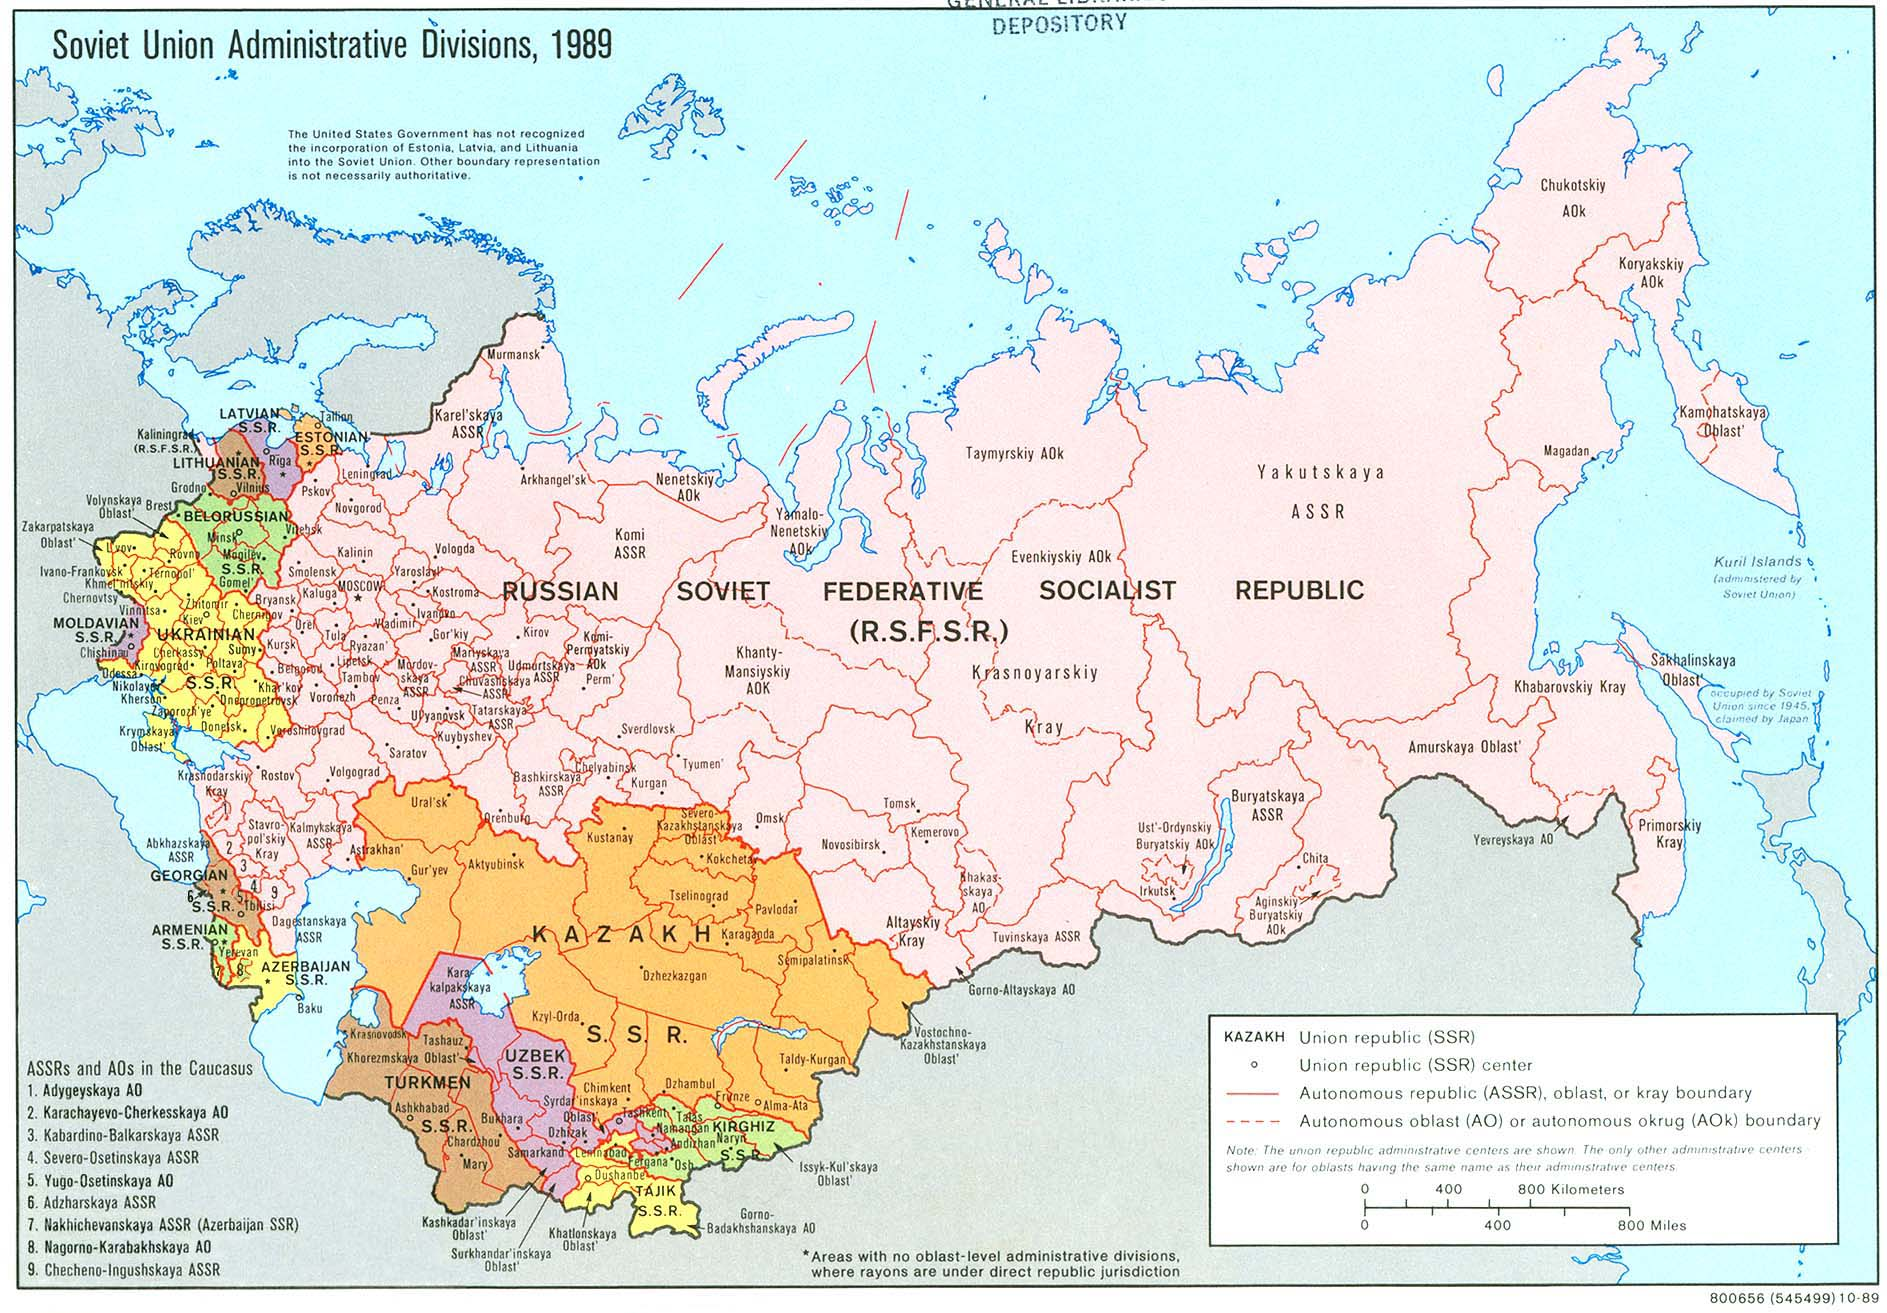 map of the Soviet Union